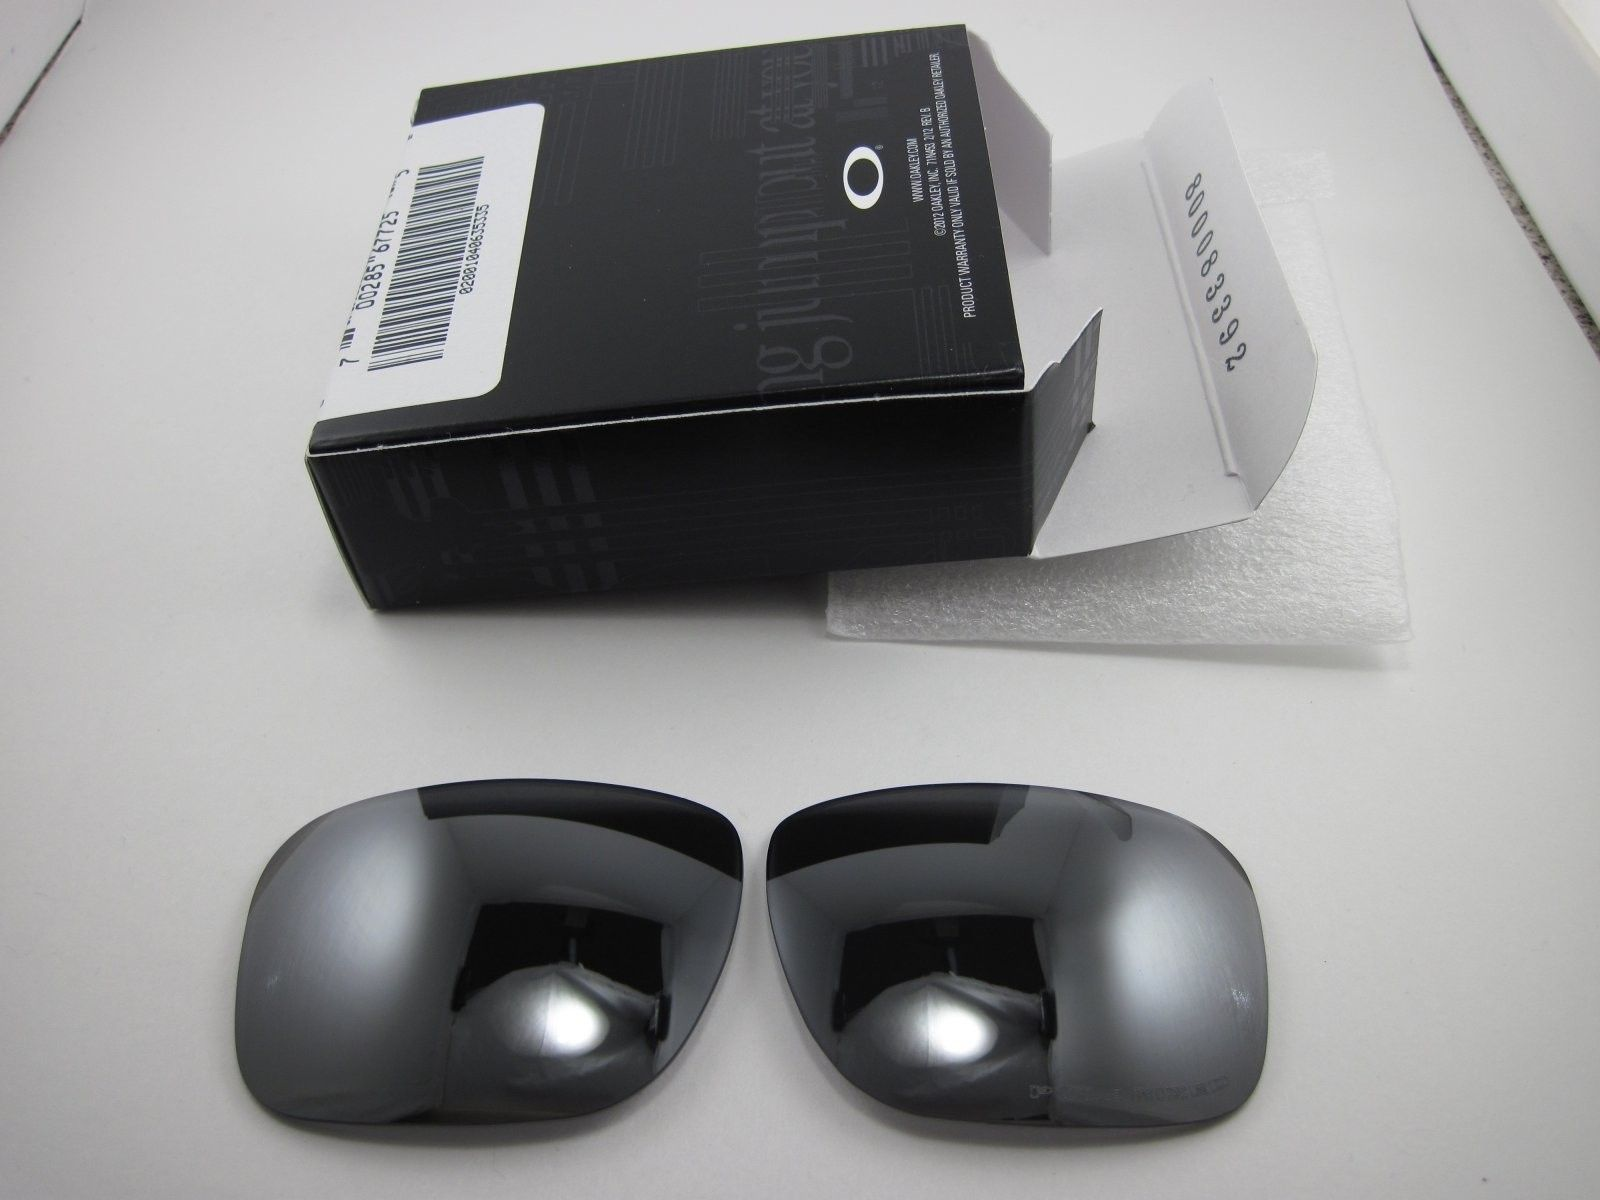 New OEM Holbrook Lenses Black Polarized W/ Box - IMG_0292.JPG